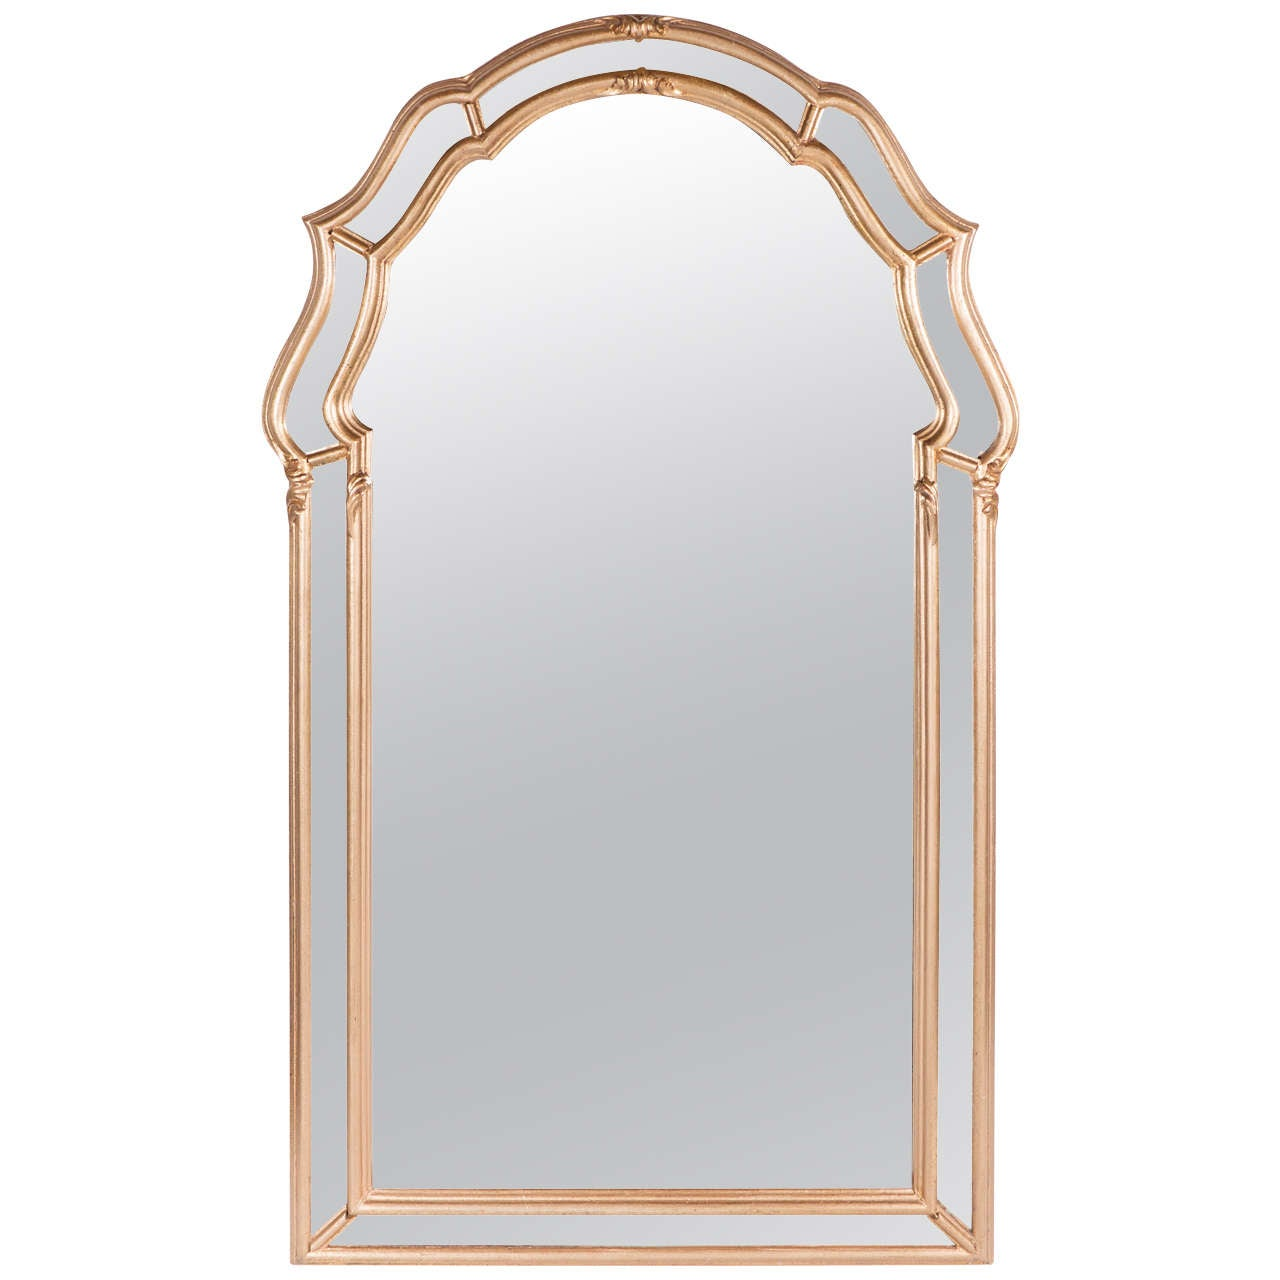 Arched gilt mirror at 1stdibs - Stunning Mid Century Modernist Gilt Mirror With Scroll Form Detailing 1